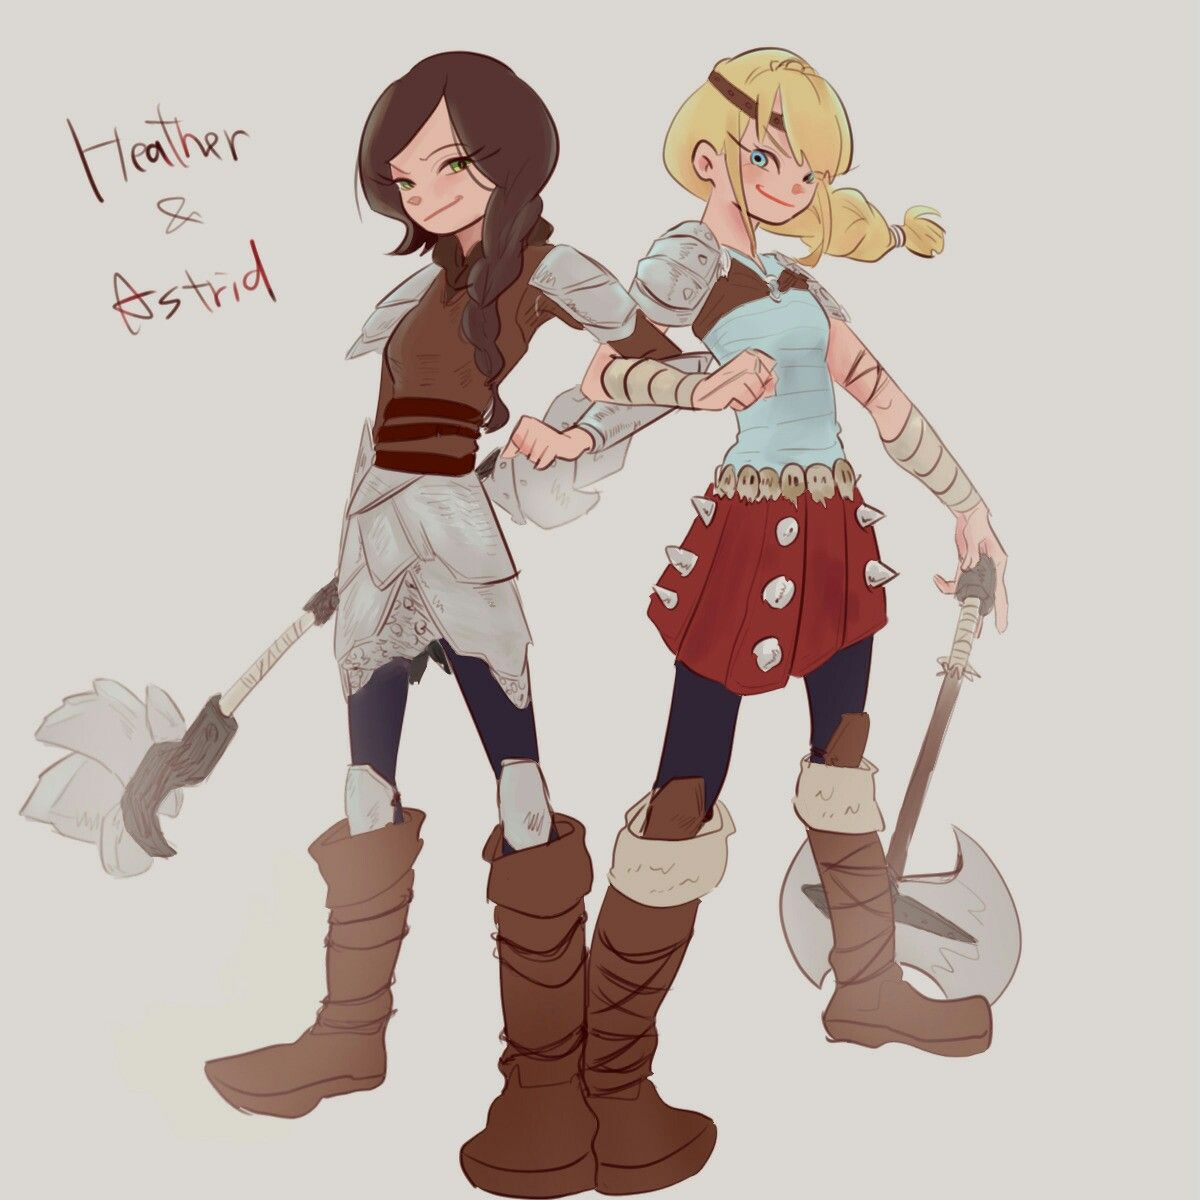 heather and astrid art rtte | How to train your dragon